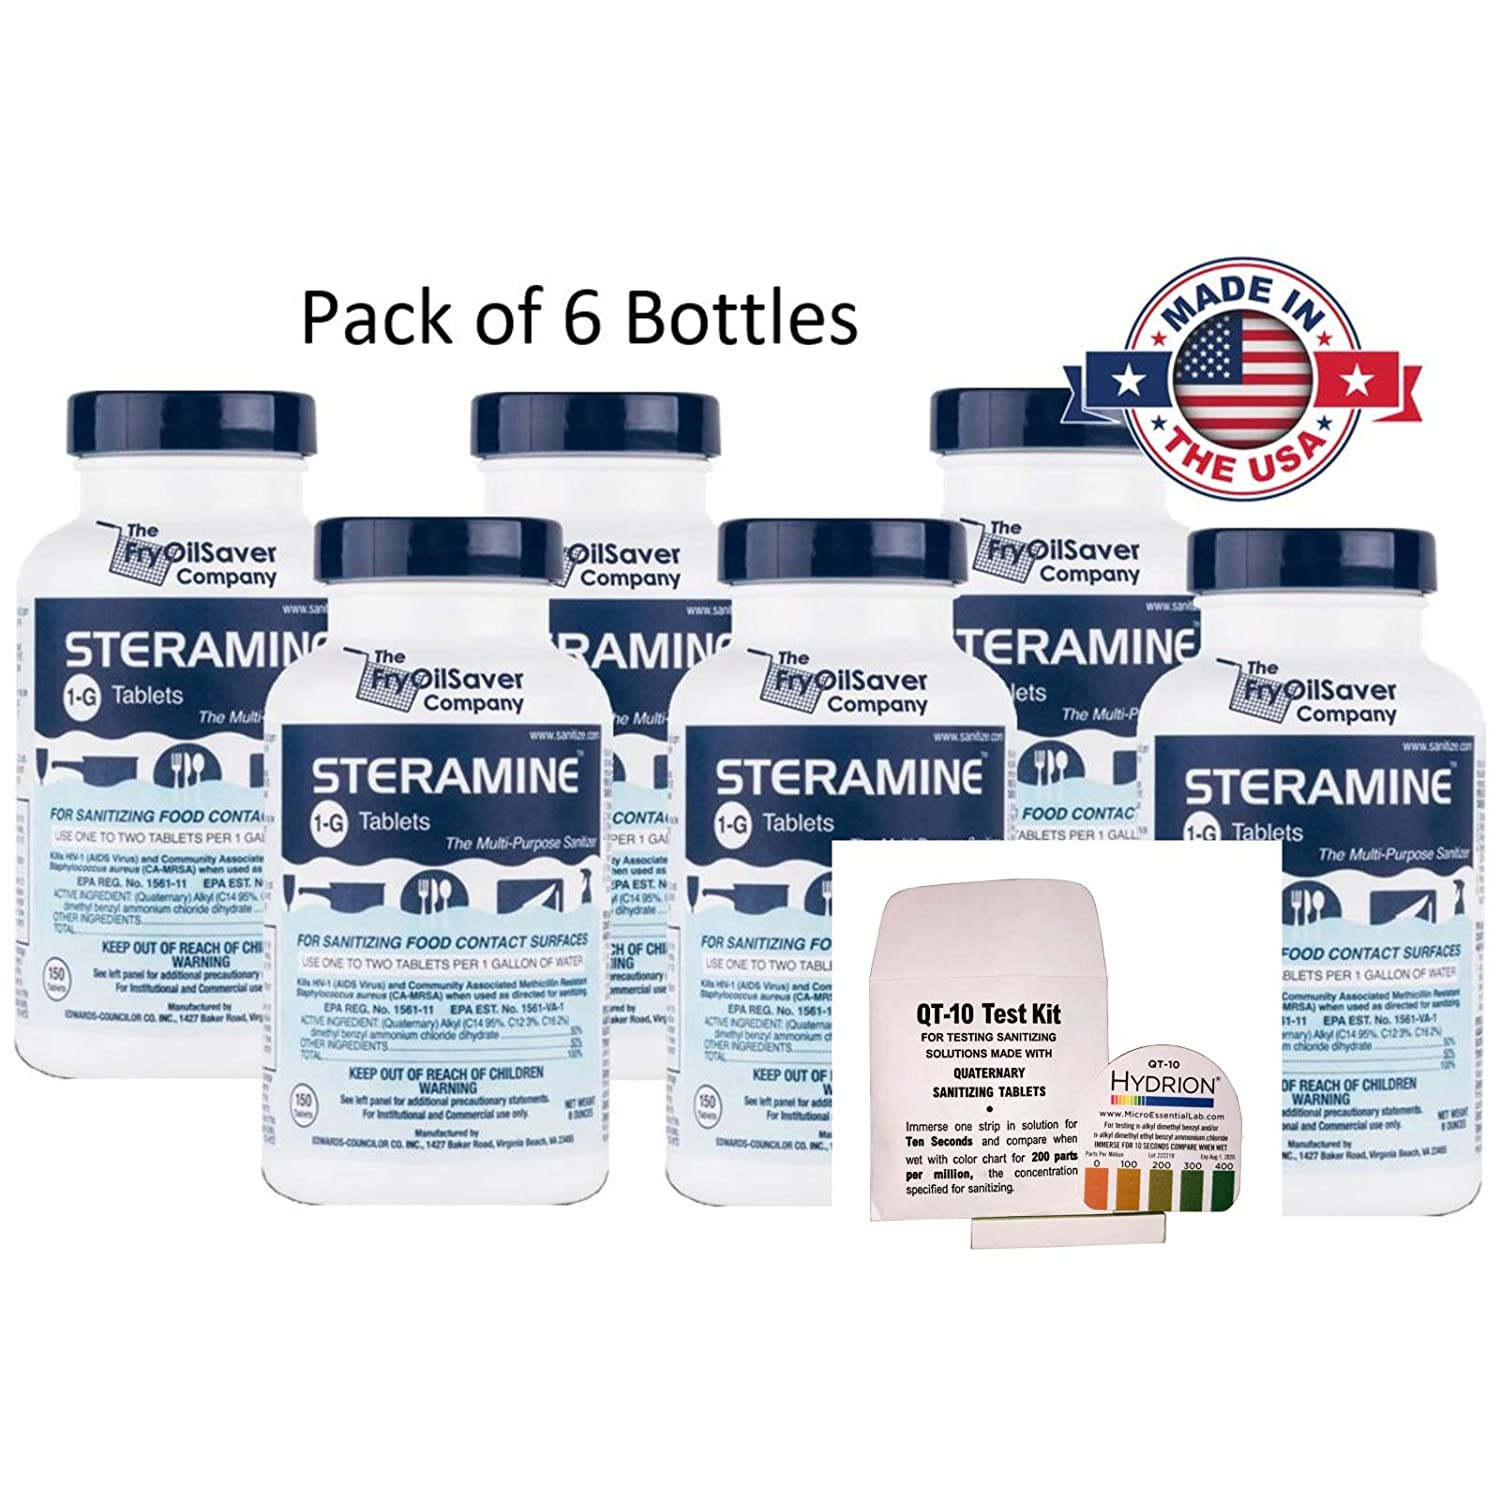 Steramine Sanitizing Tablets Bundle of 6 x Bottles with QT-10 Test Strips for Sanitizing Solutions